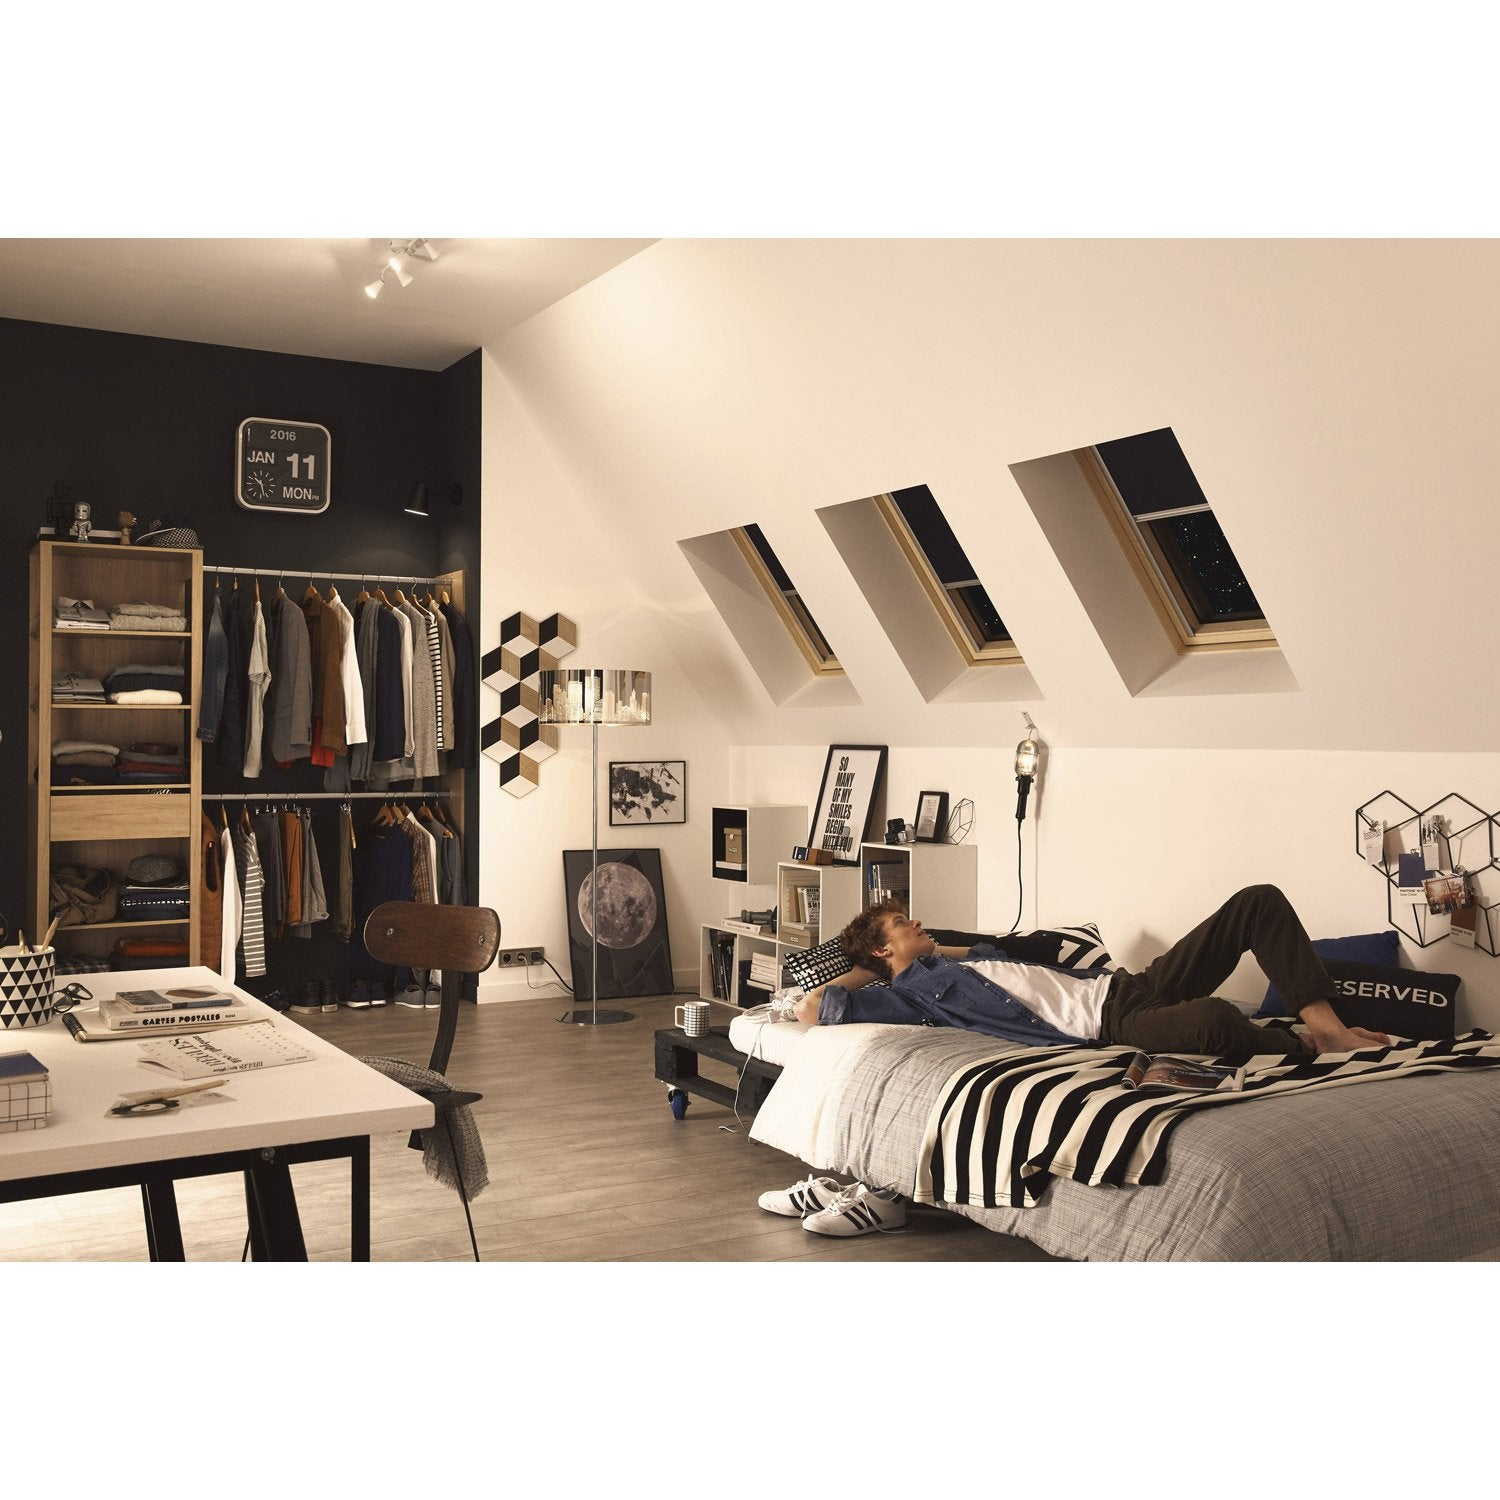 store velux 114x118 pas cher gallery of store enrouleur bleu pour fentre de toit solstro velux. Black Bedroom Furniture Sets. Home Design Ideas